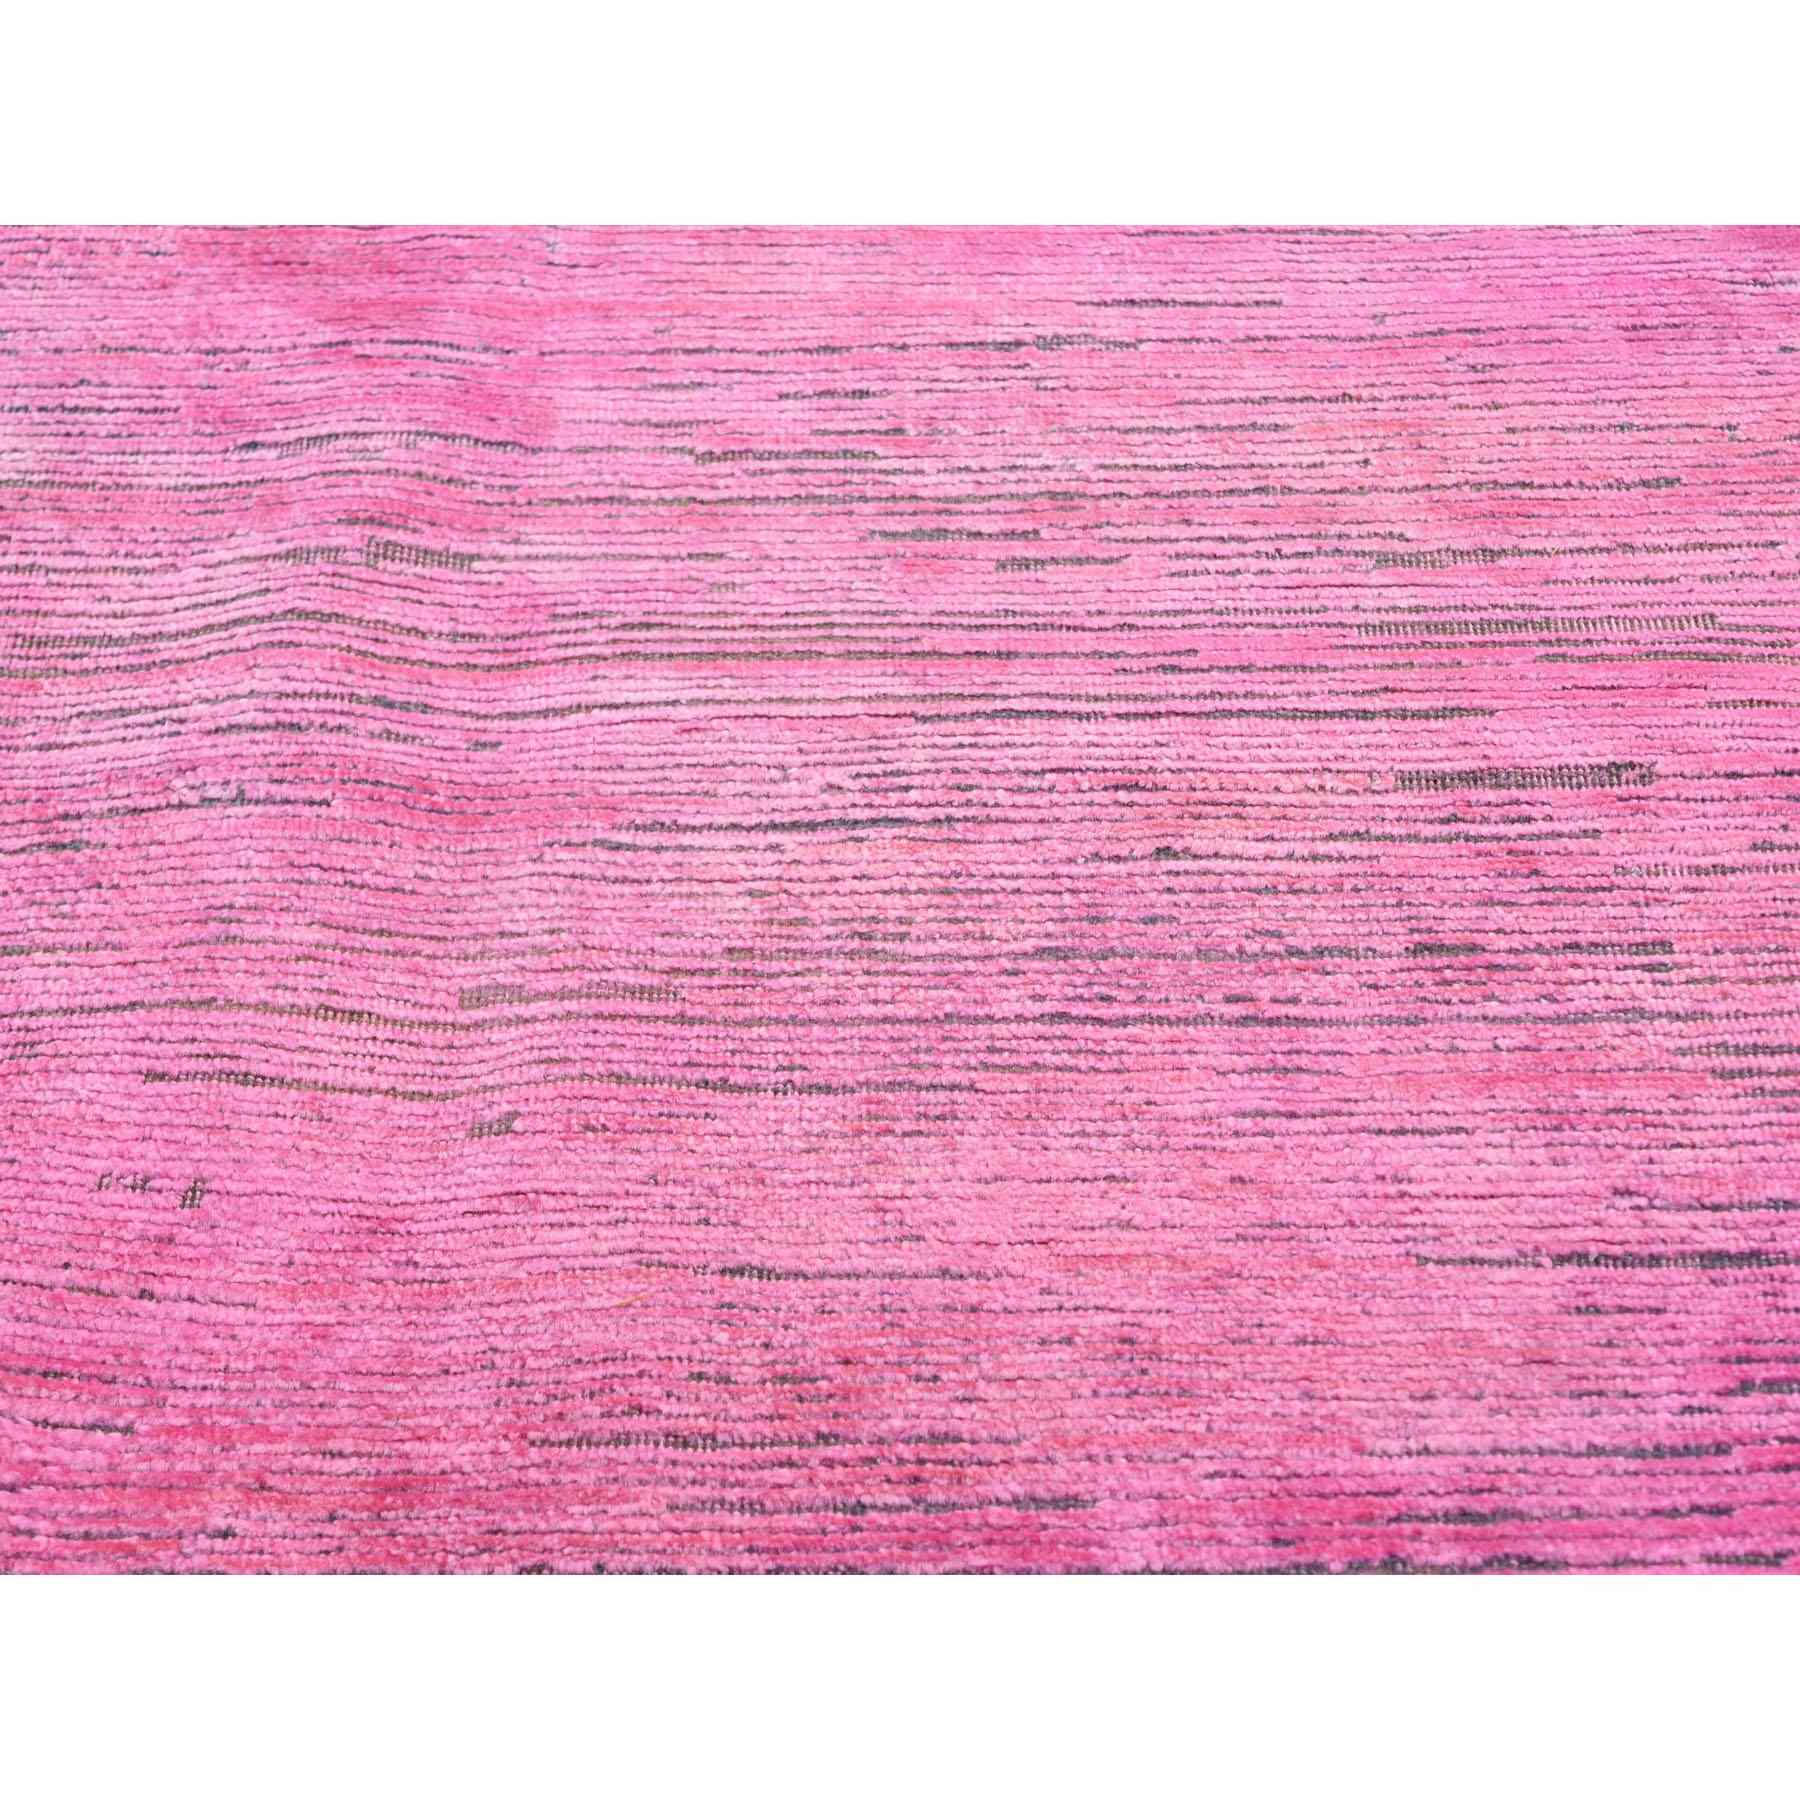 8'x10' Pink Overdyed Silk With Textured Wool Hand Knotted Oriental Rug